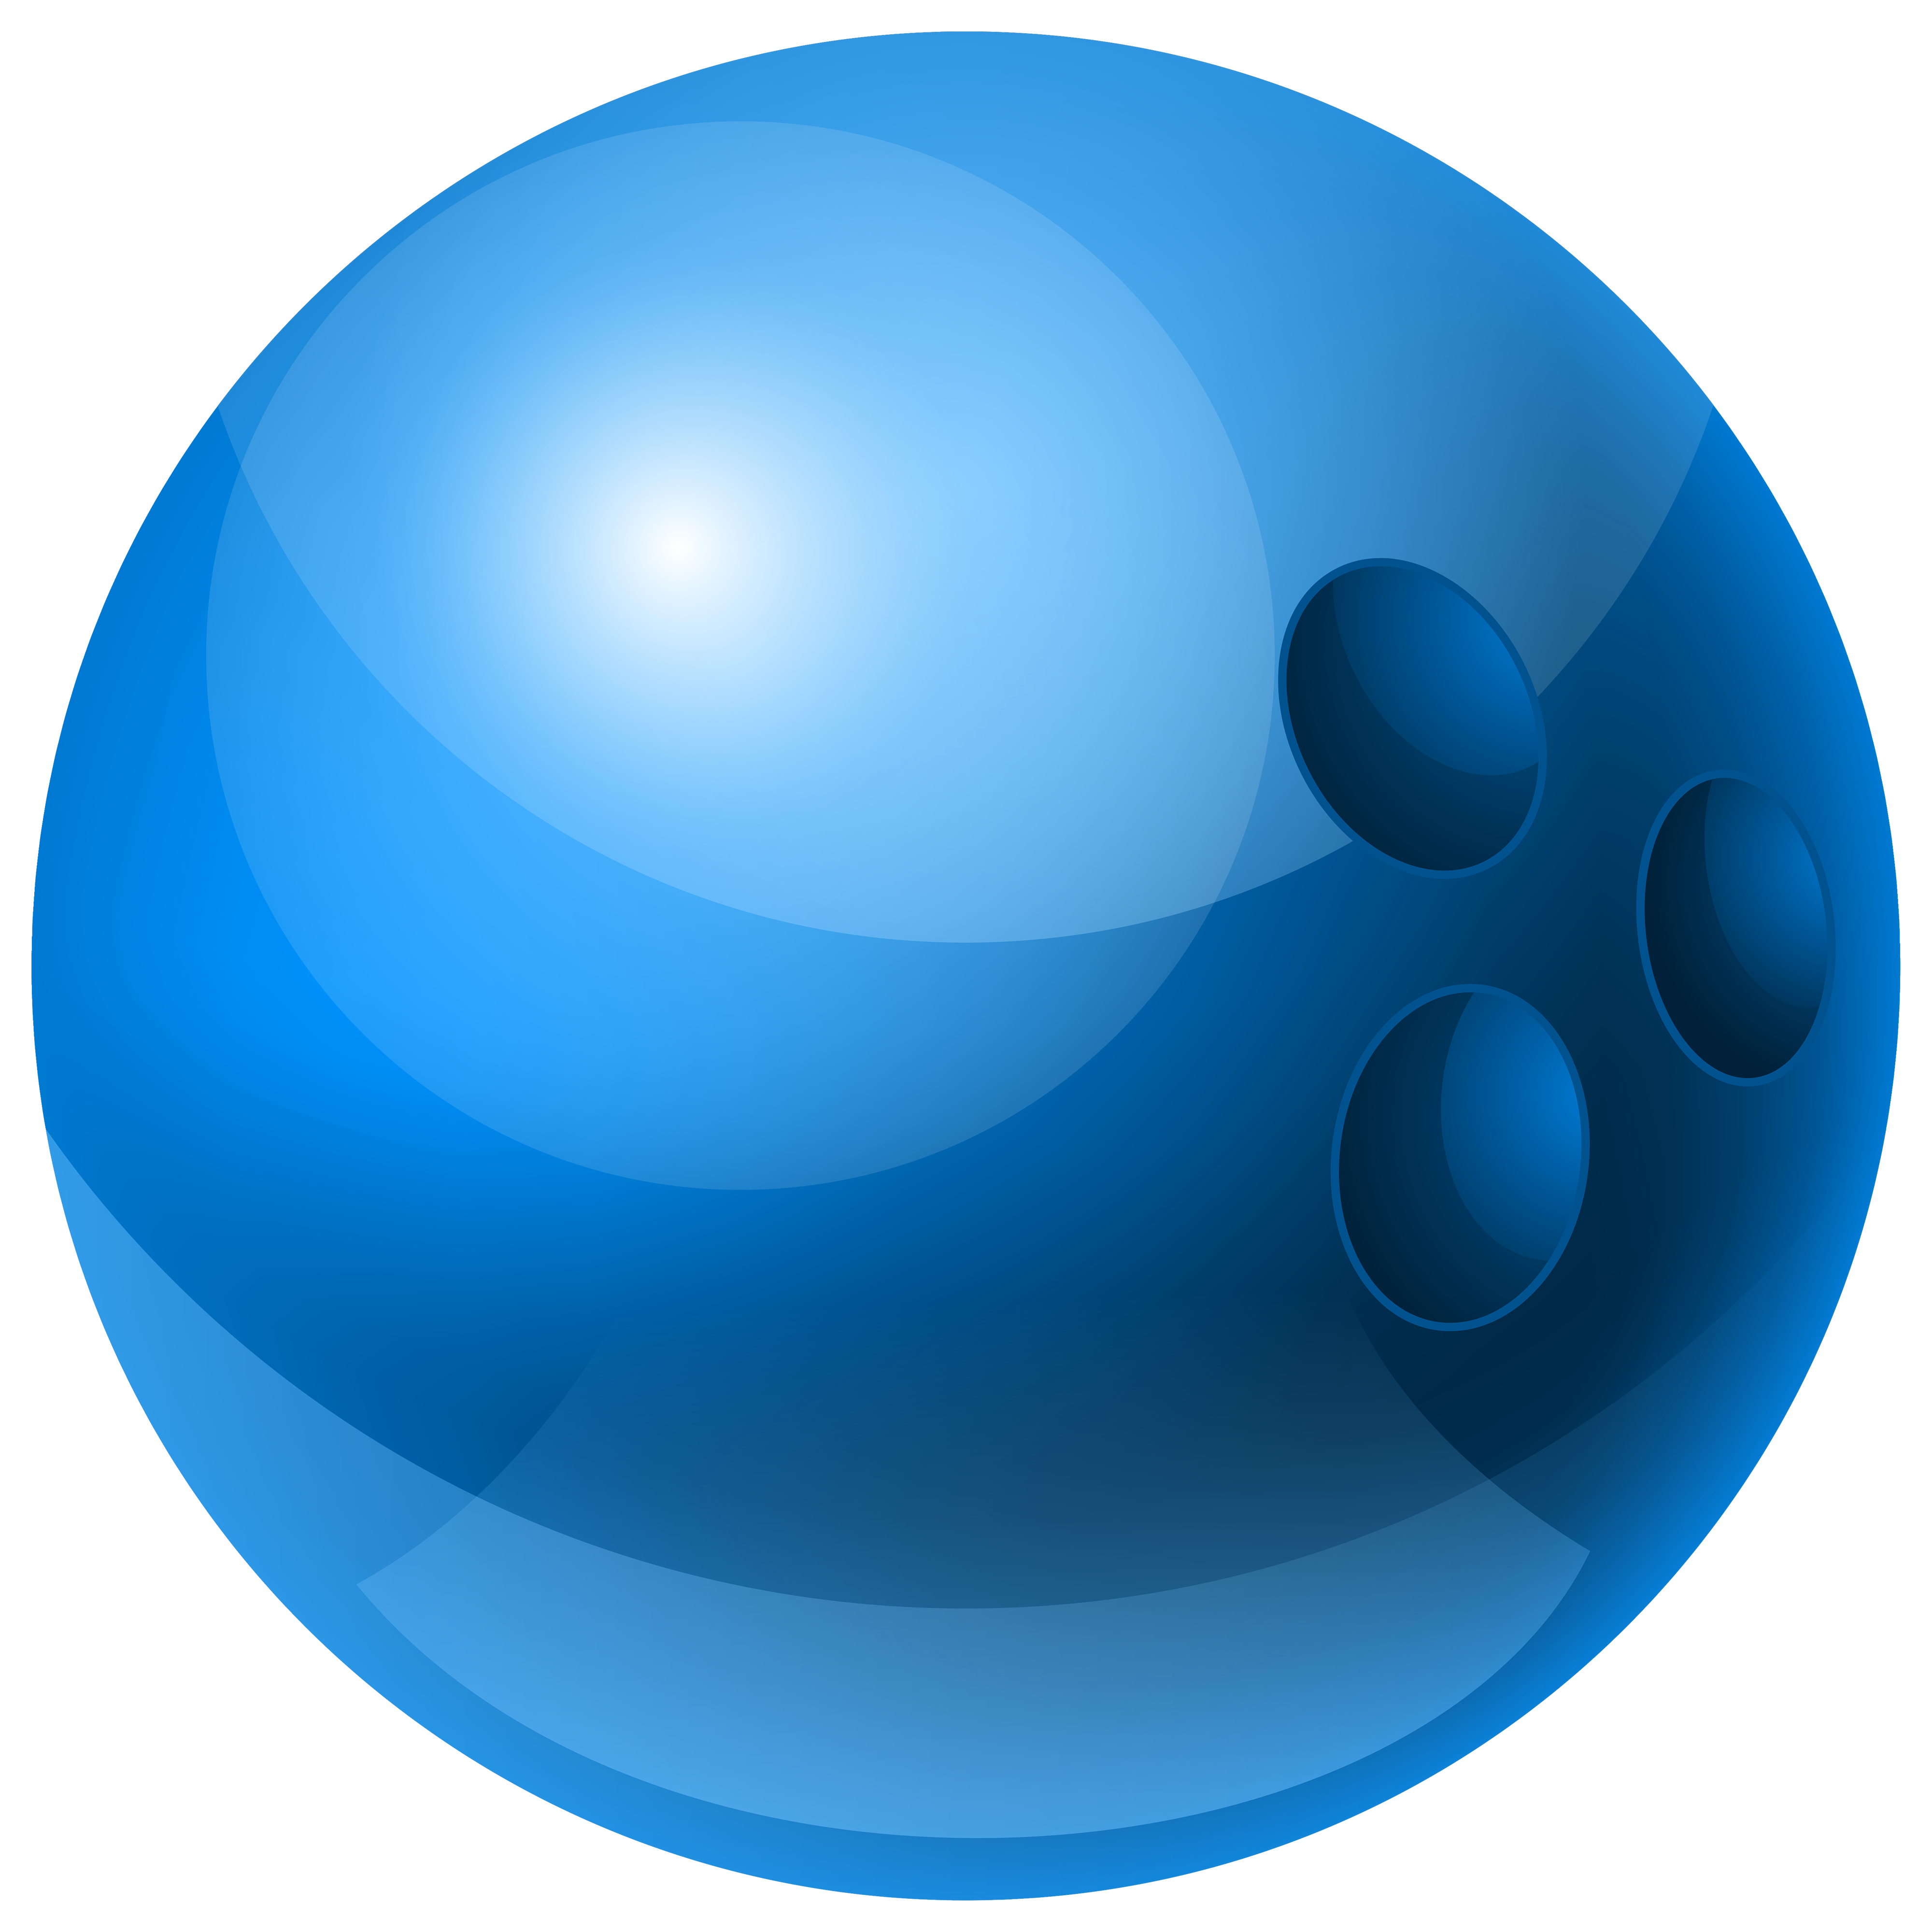 4000x4000 Blue Bowling Ball Png Clipart